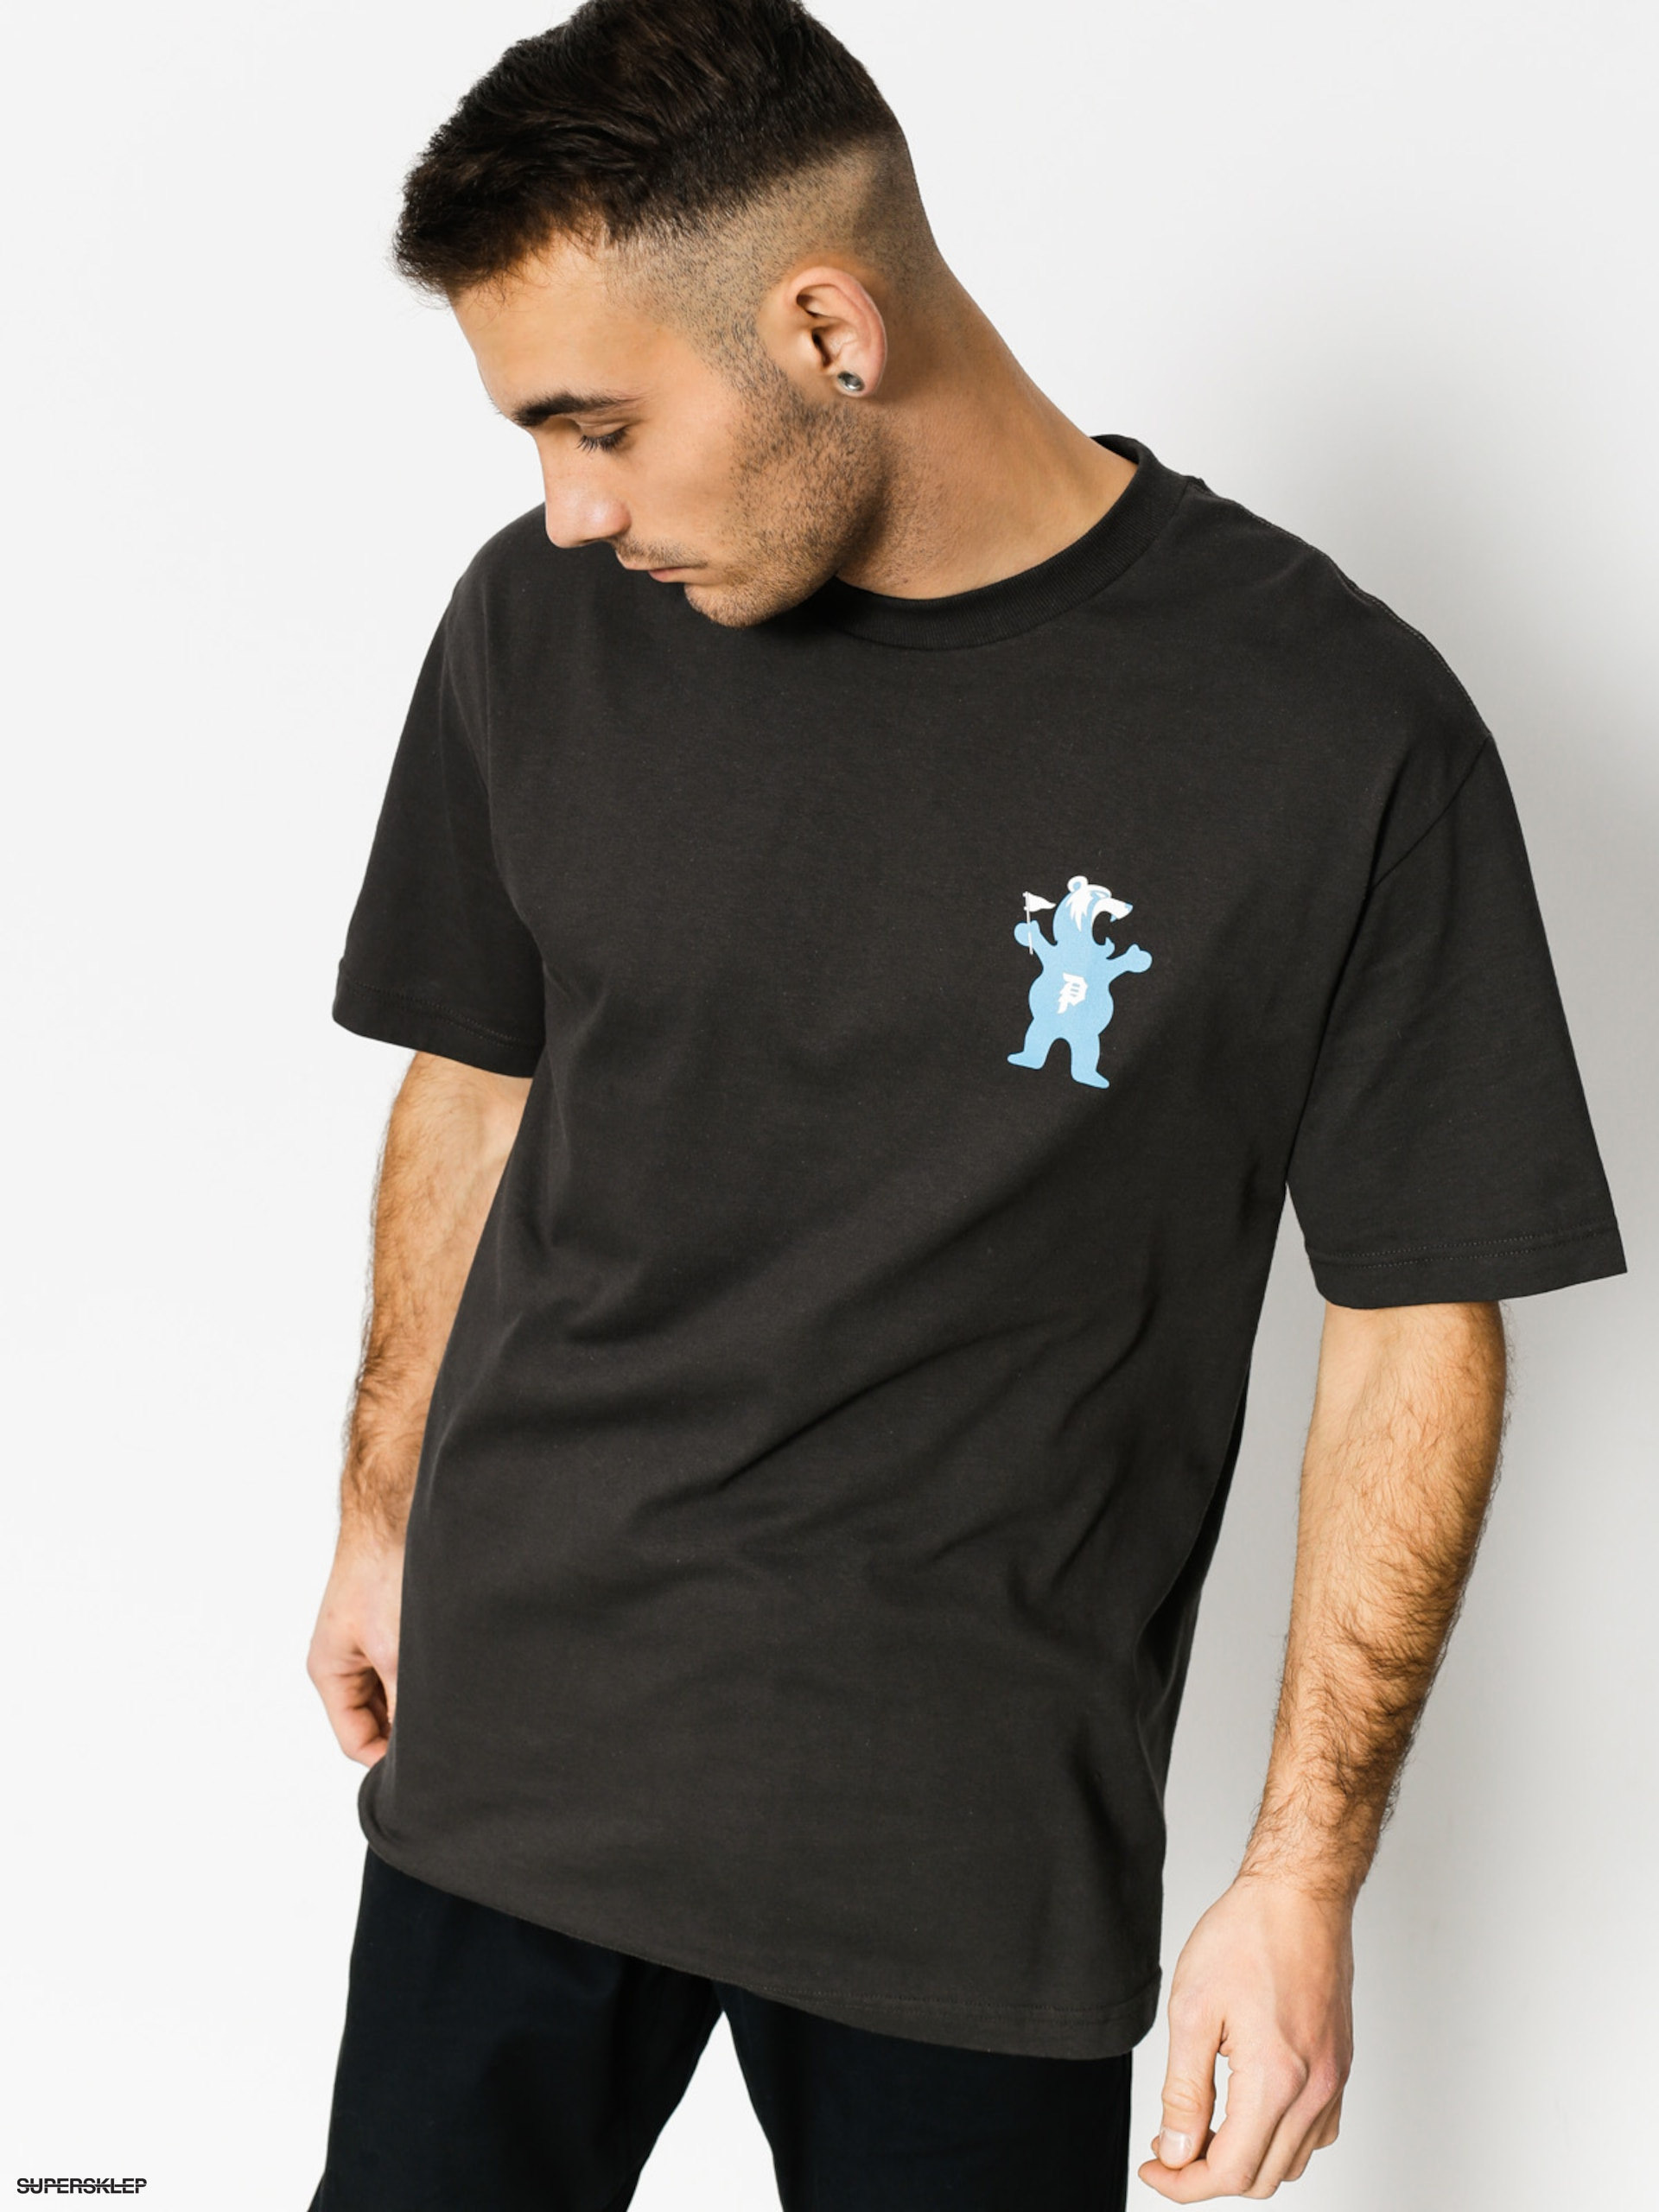 T-shirt Primitive x Grizzly Griptape Mascot